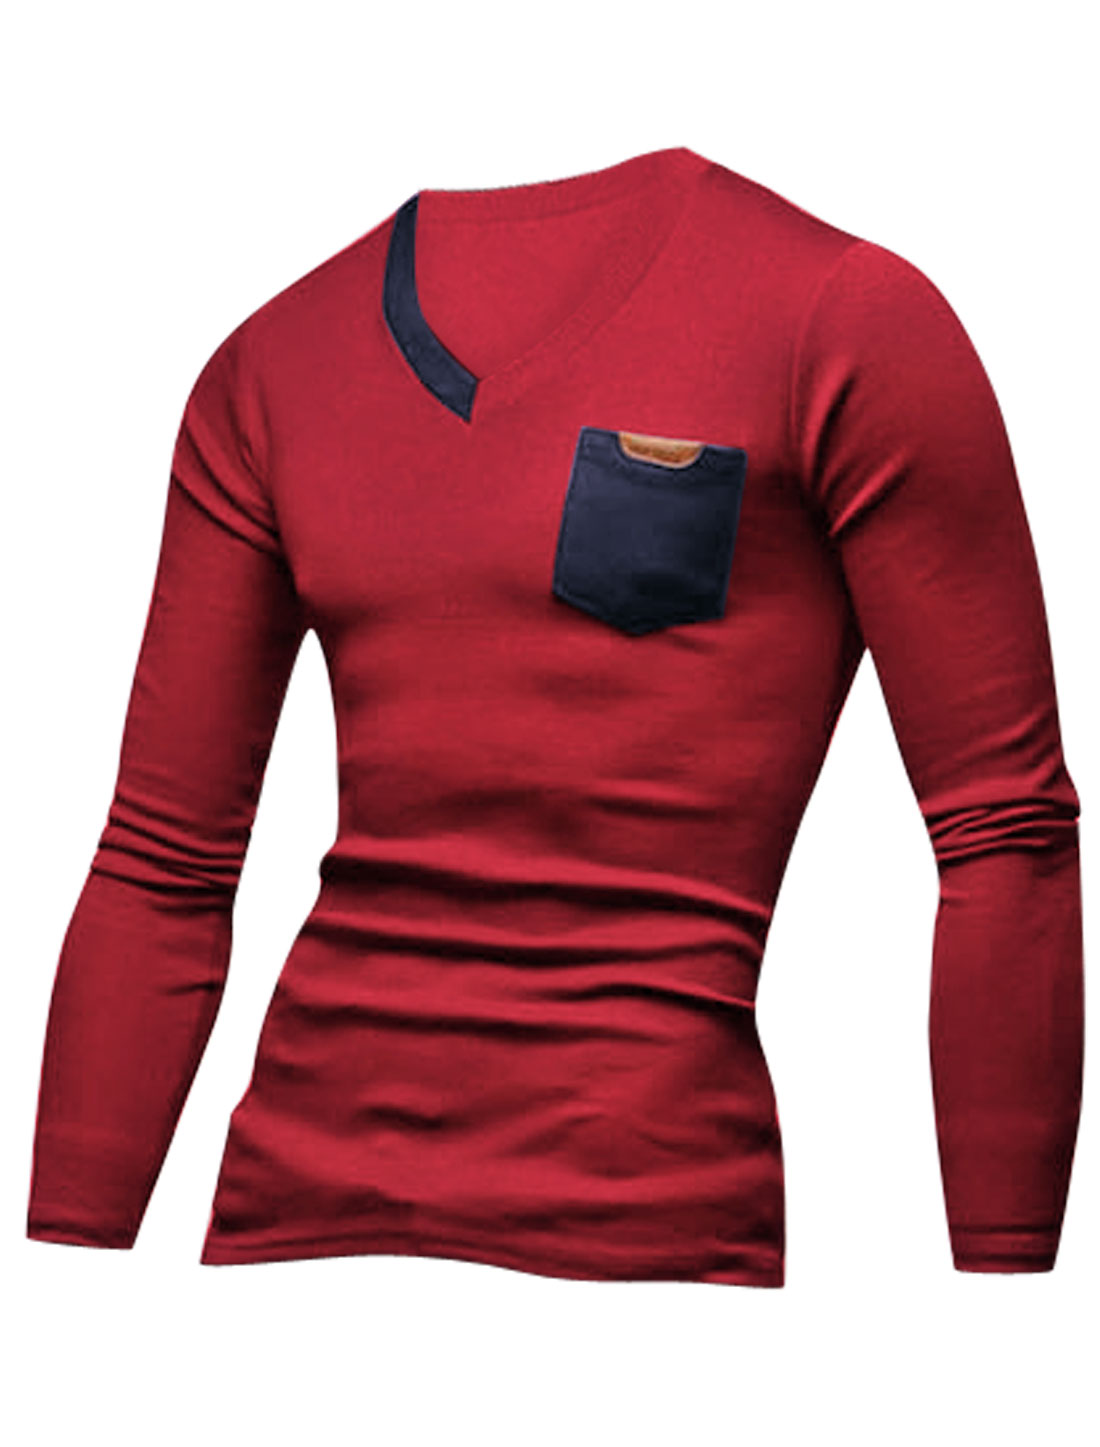 Men Long Sleeves V Neckline Pullover Fashion T-Shirt Burgundy Navy Blue M